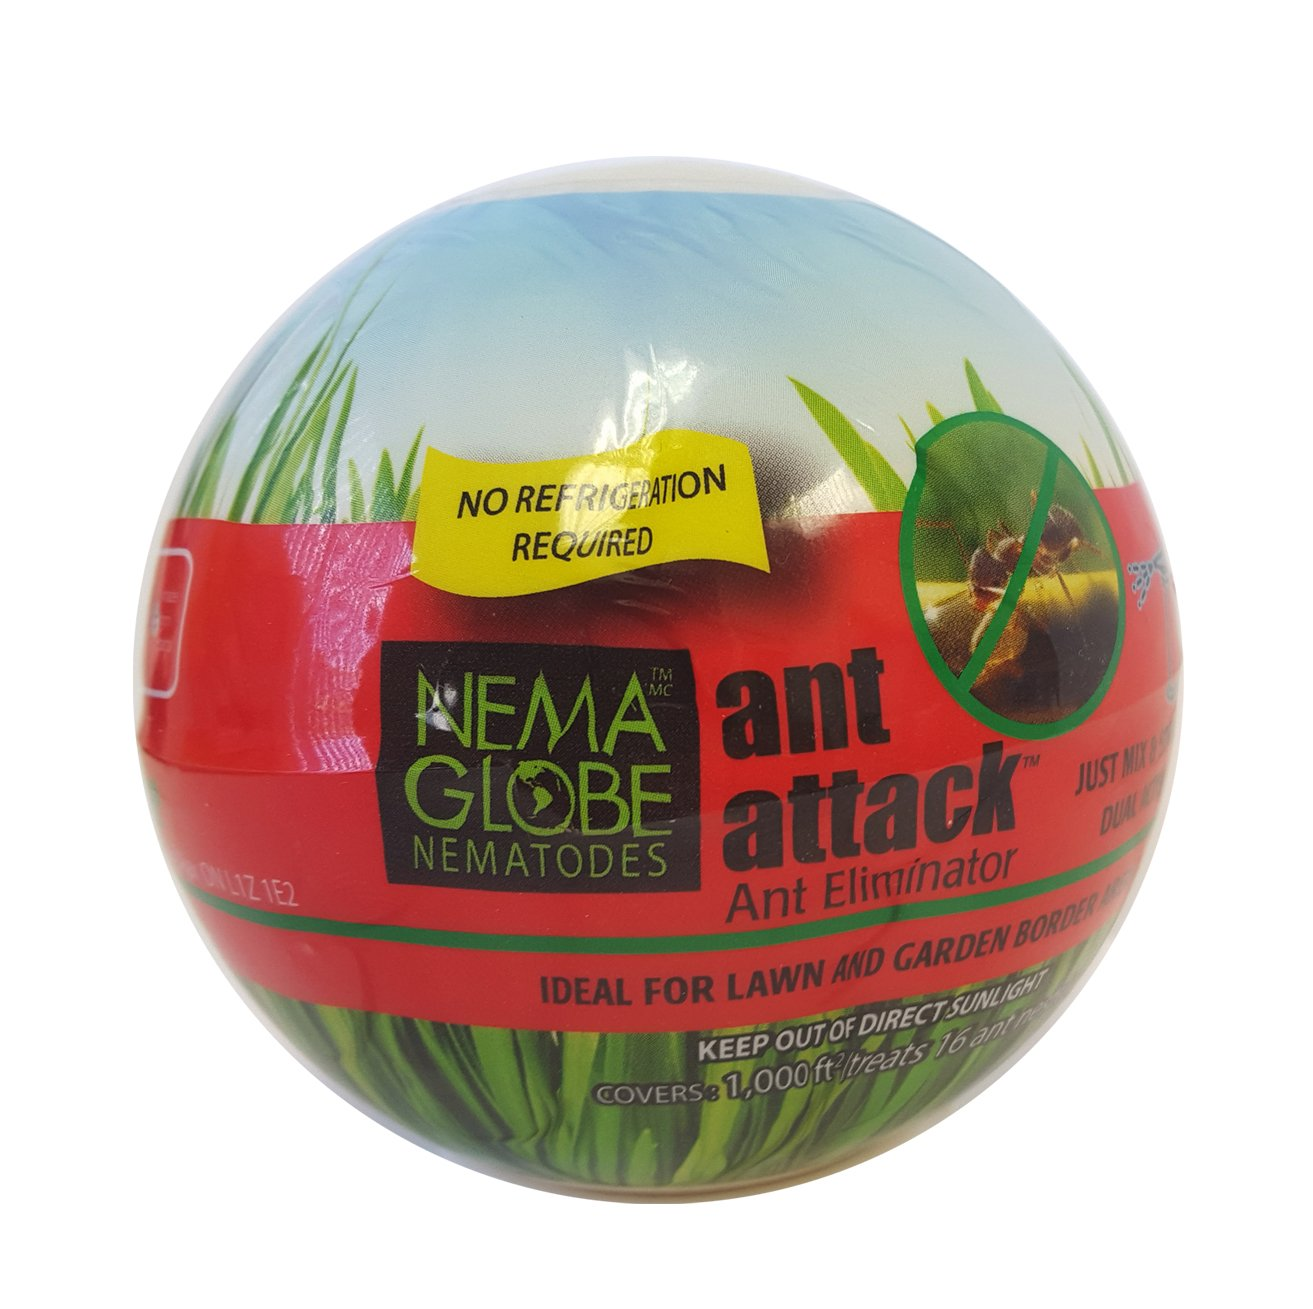 10 million Beneficial Nematodes (S.feltiae) - Nema Globe Ant Attack Tick and Pest Control New''No Refrigeration Required'' Formula